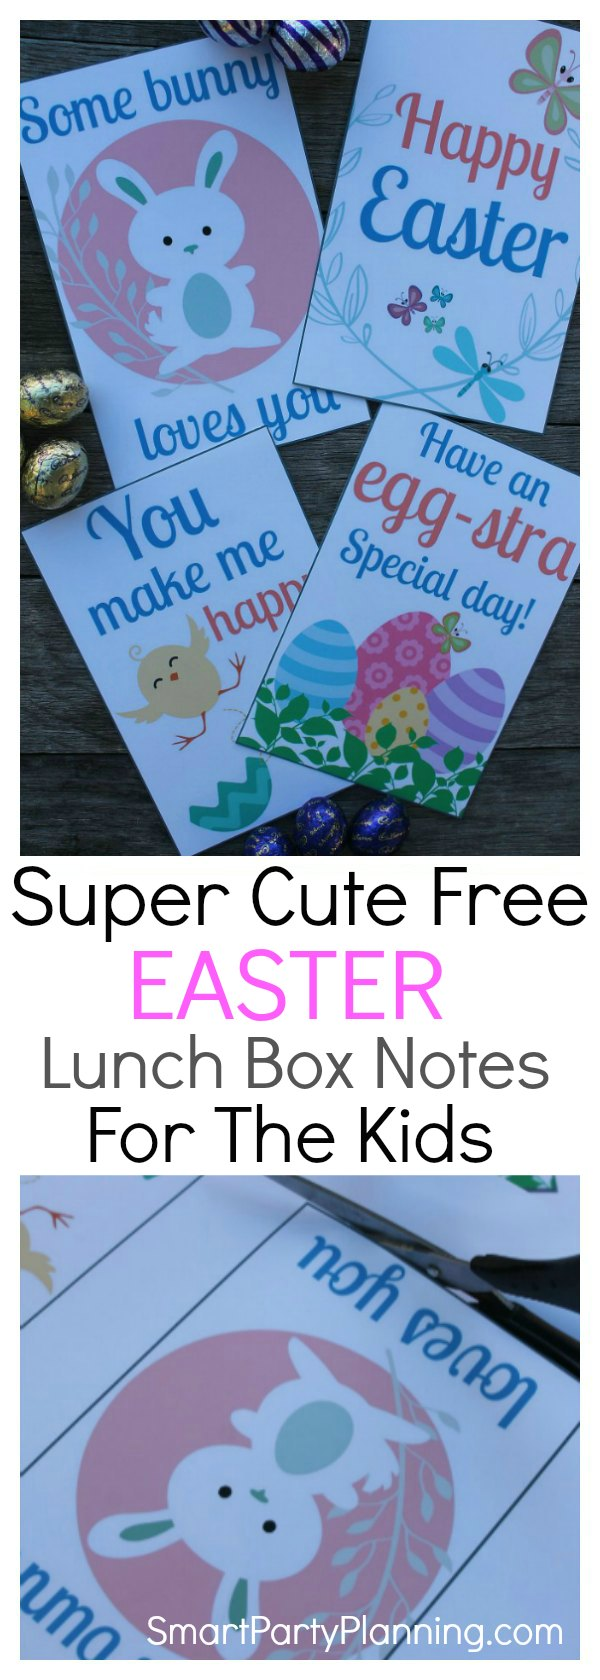 Super cute free Easter lunch box notes